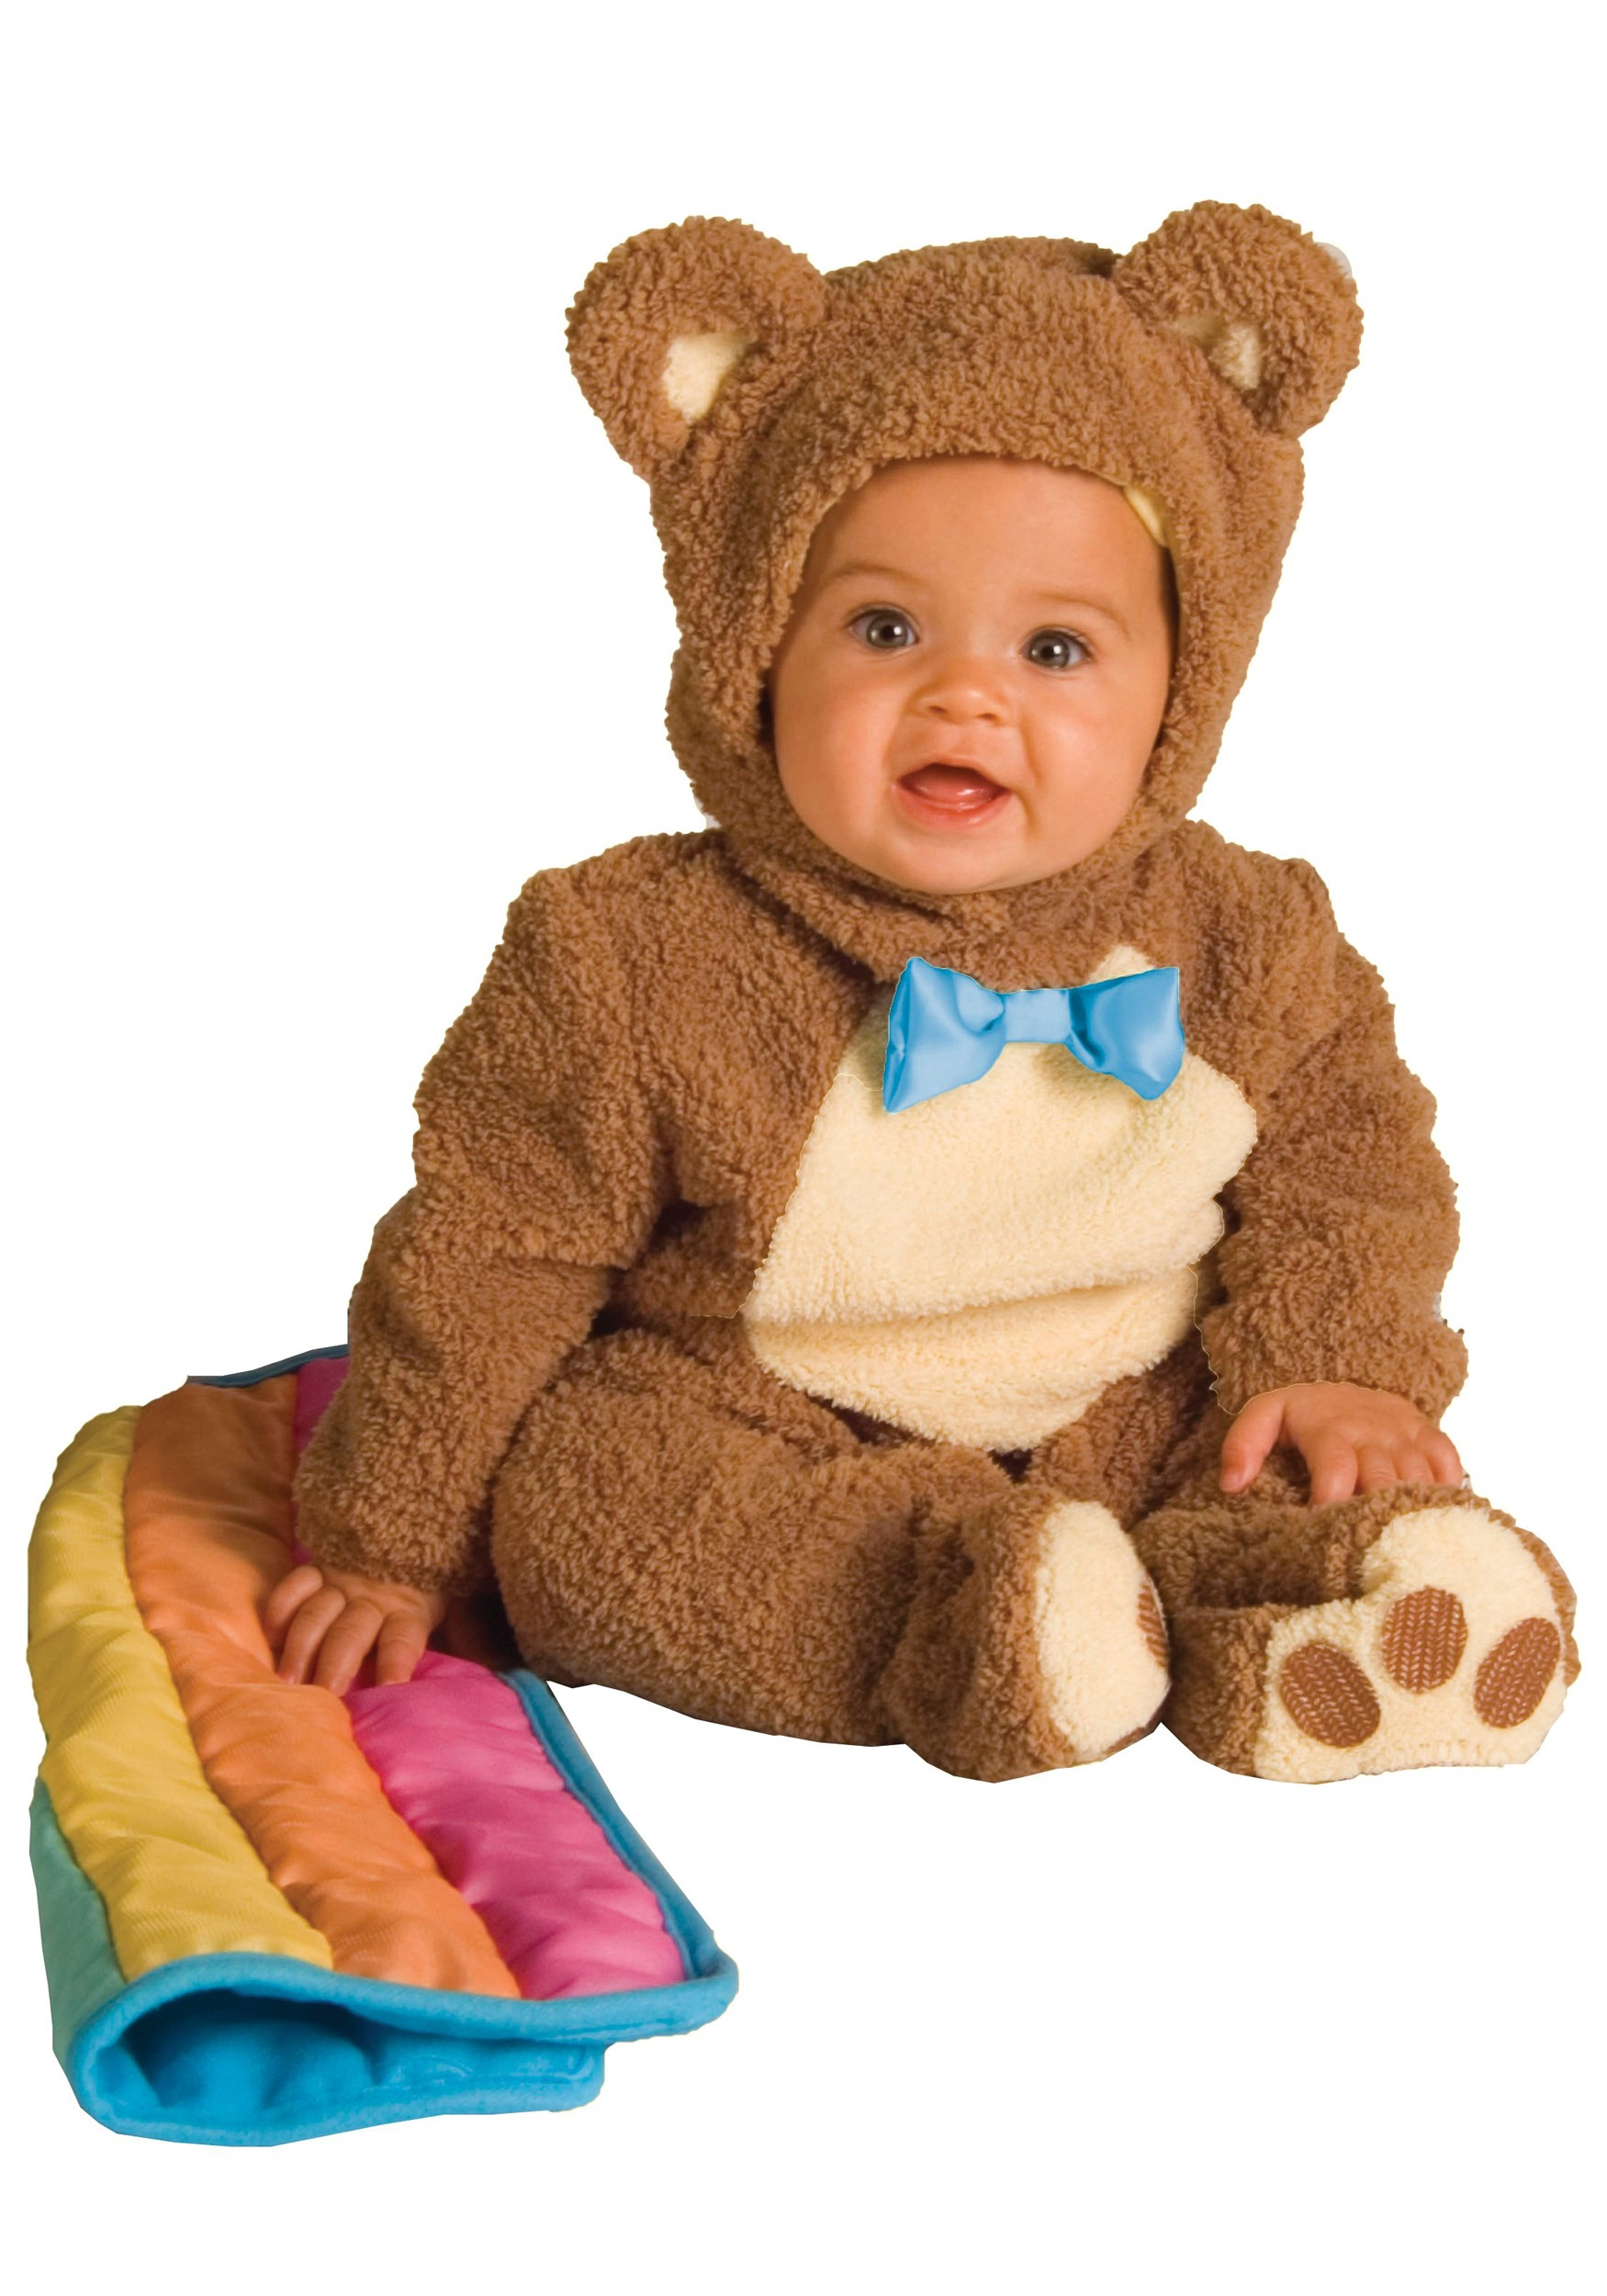 Infant Bear Costume  sc 1 st  Halloween Costume & Infant Bear Costume - Baby Teddy Bear Halloween Costumes